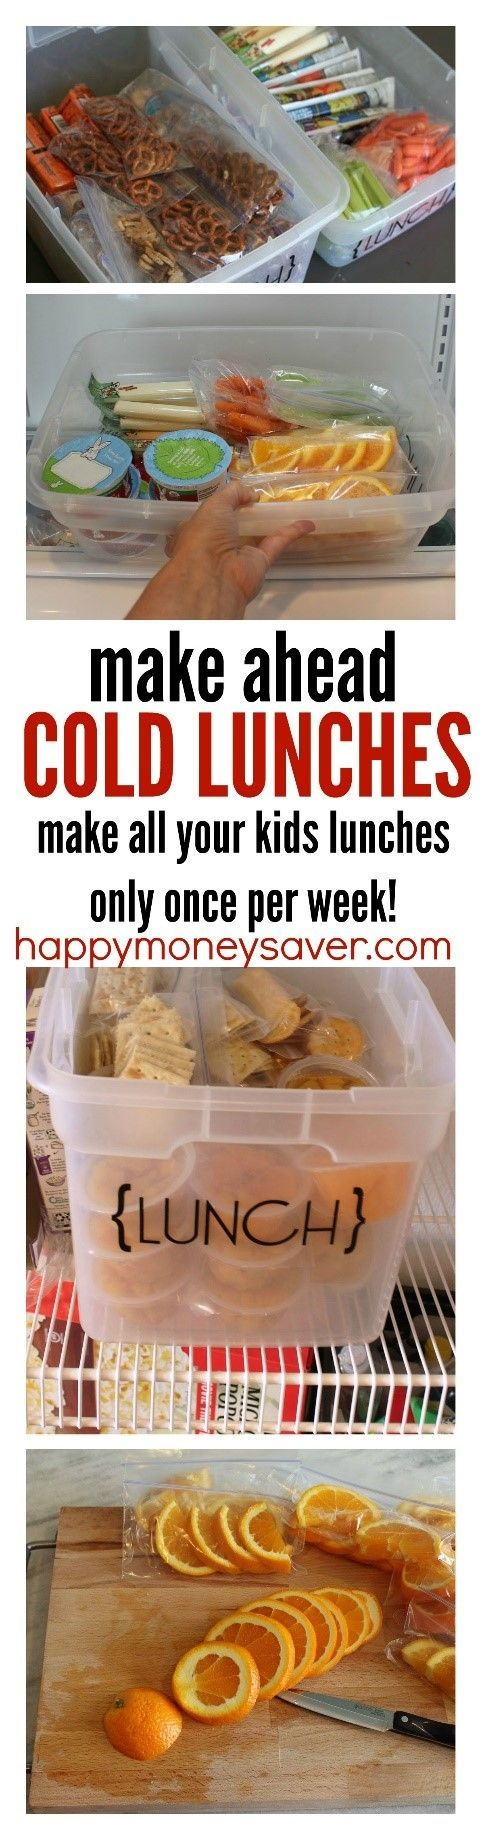 Want an easier way to make your kids lunches? You will want to try these ideas to make your life much easier and less stressful during the week!